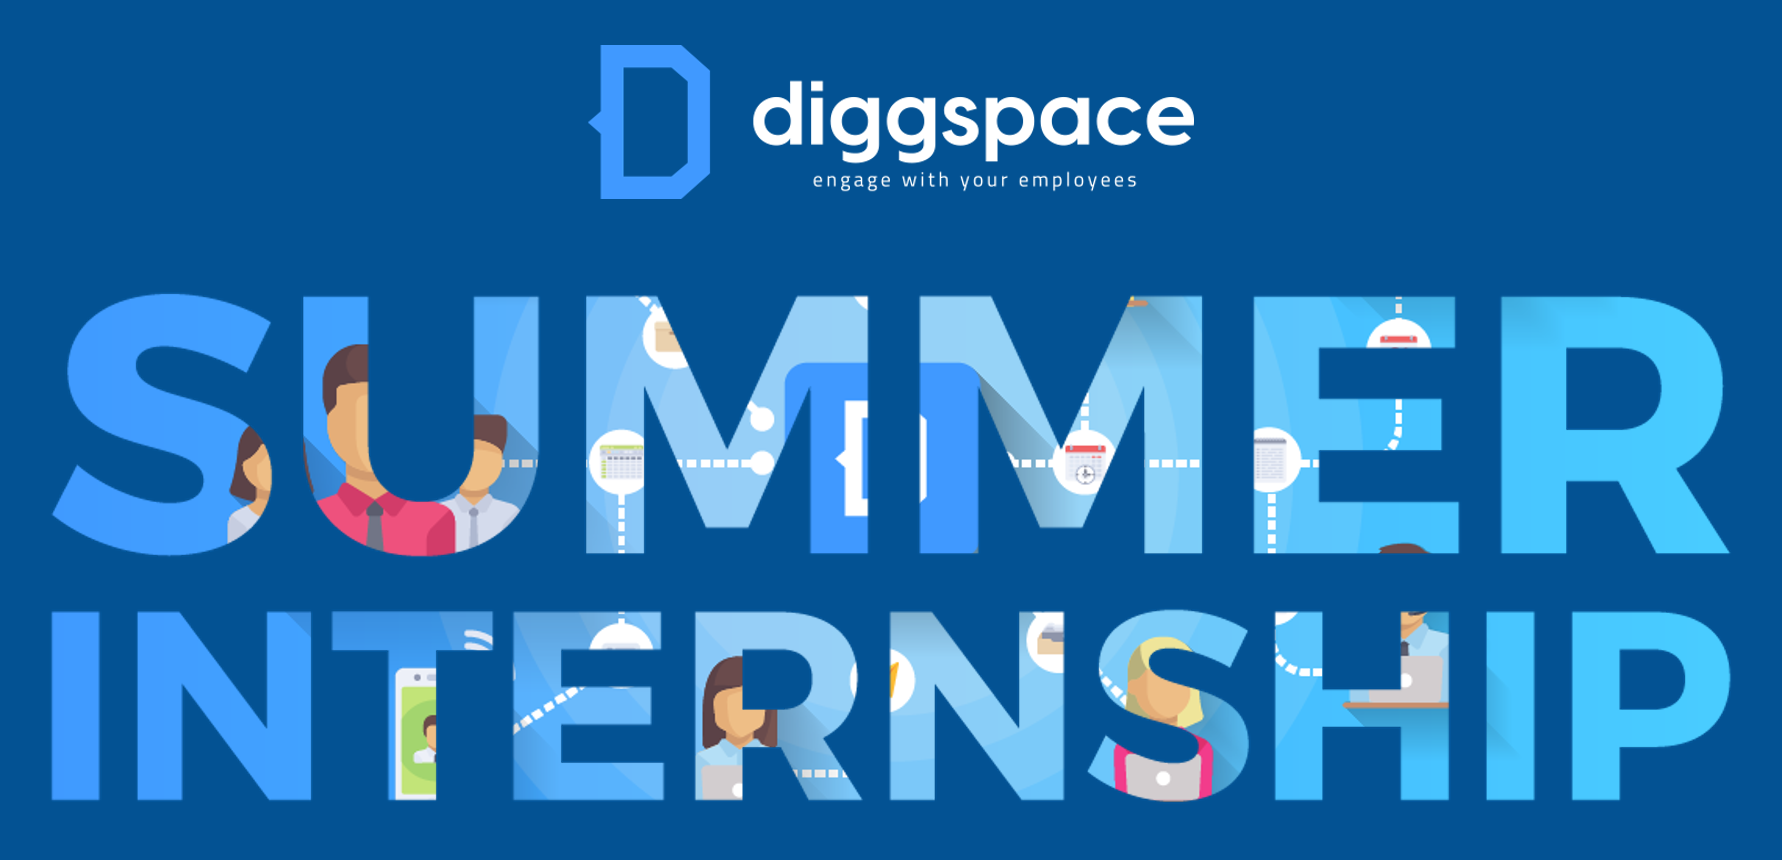 DiggSpace: Summer Internship for Software Engineers